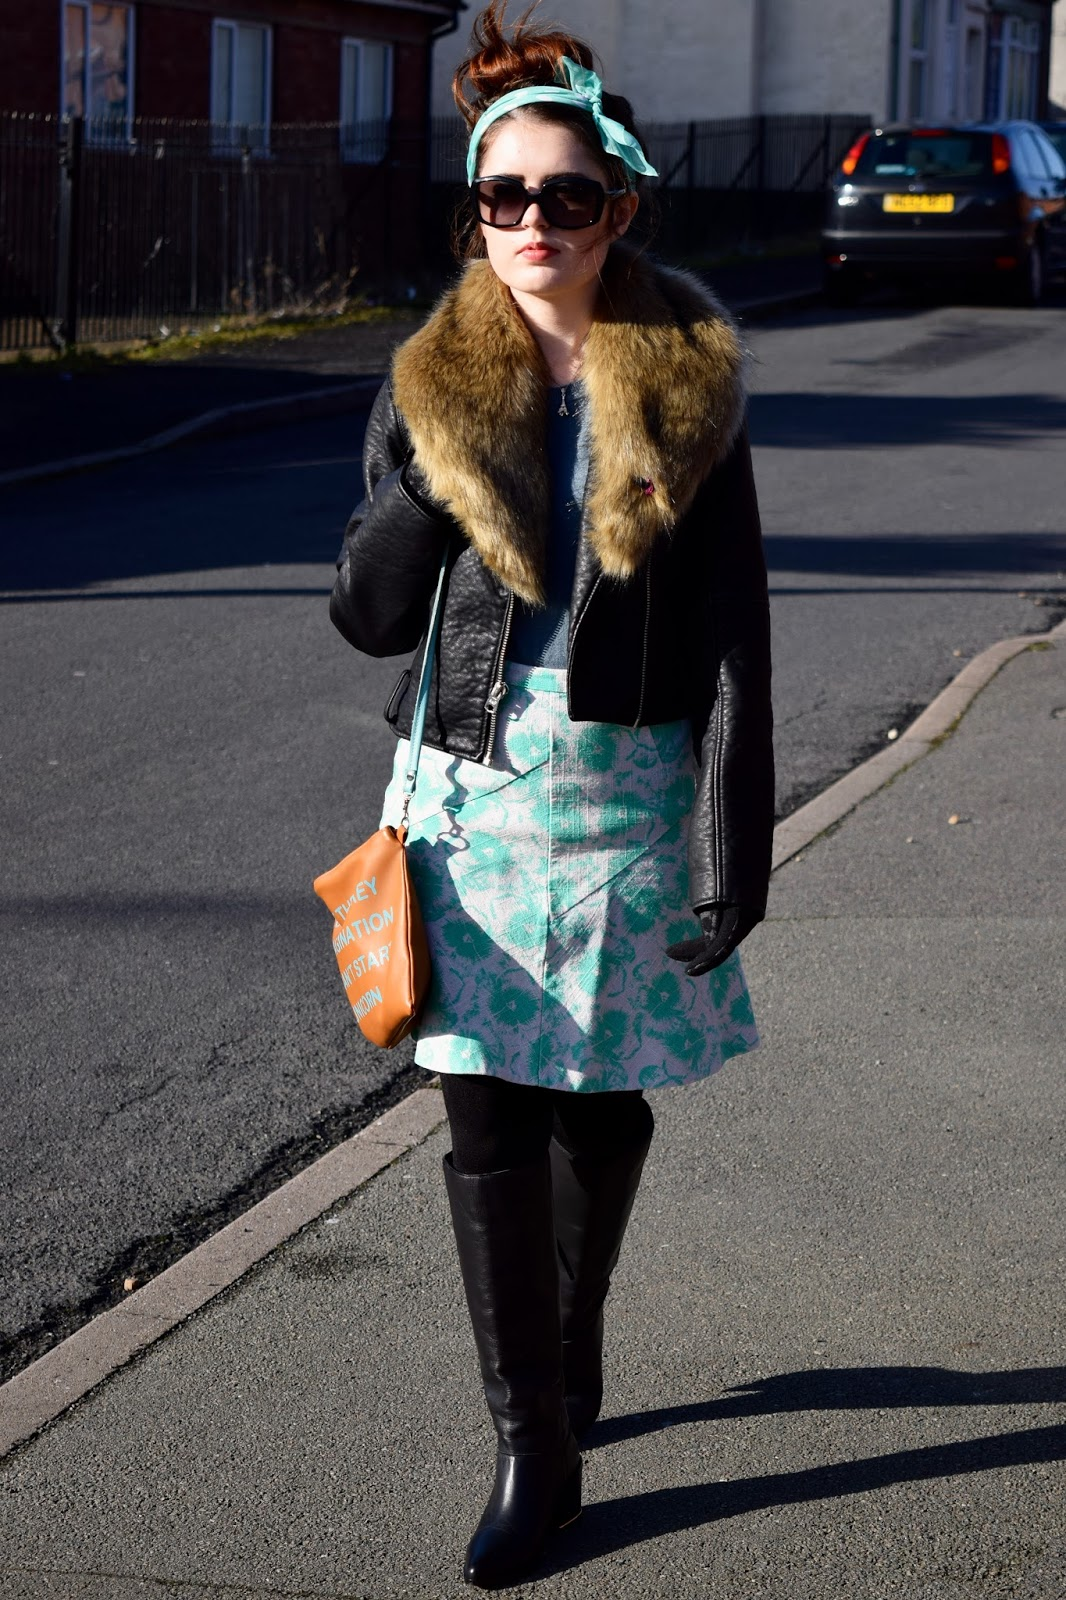 http://www.ohduckydarling.com/p/style-file-layered-look.html